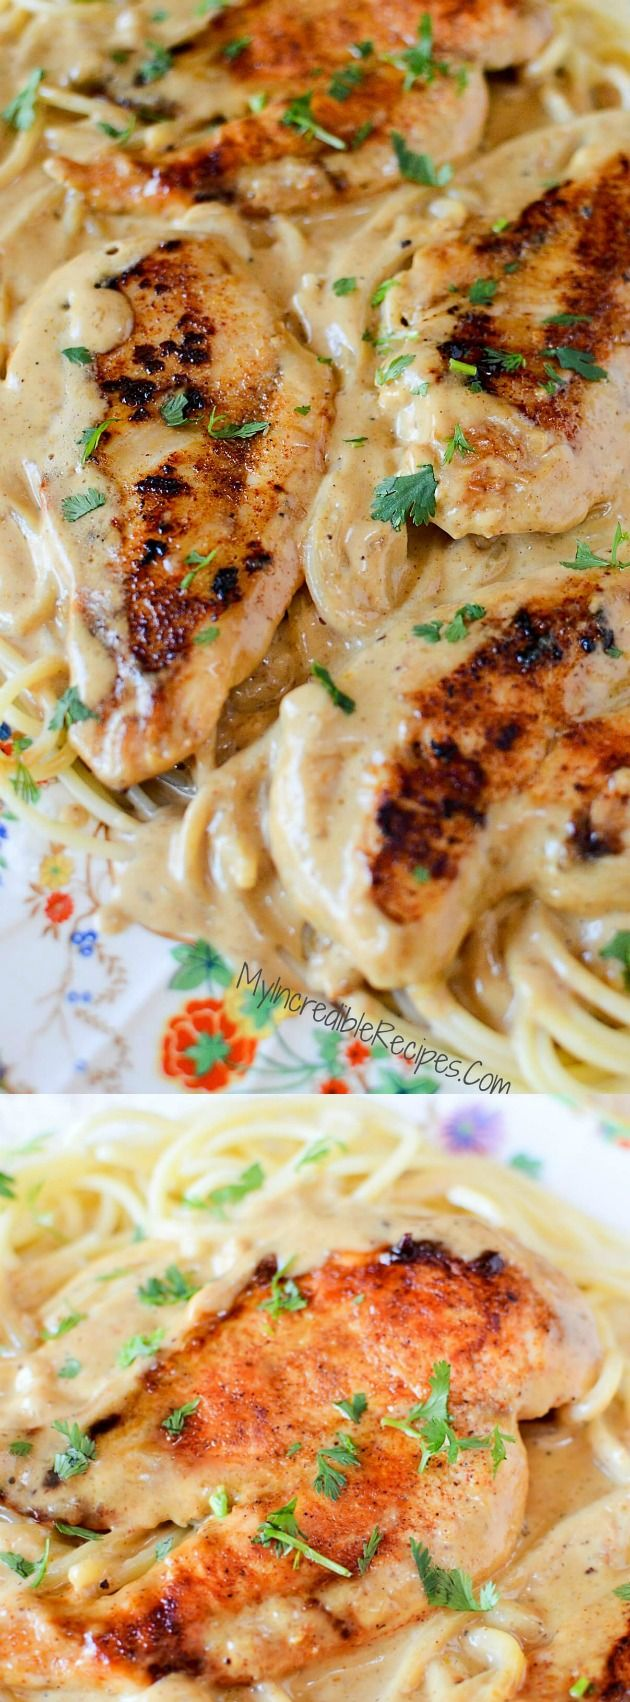 This Chicken Lazone dinner recipe from My Incredible Recipes is sure to become your new family favorite go-to recipe! It seriously has the most delicious pan fried chicken with butter and seasonings that create a pan sauce that is just incredible!